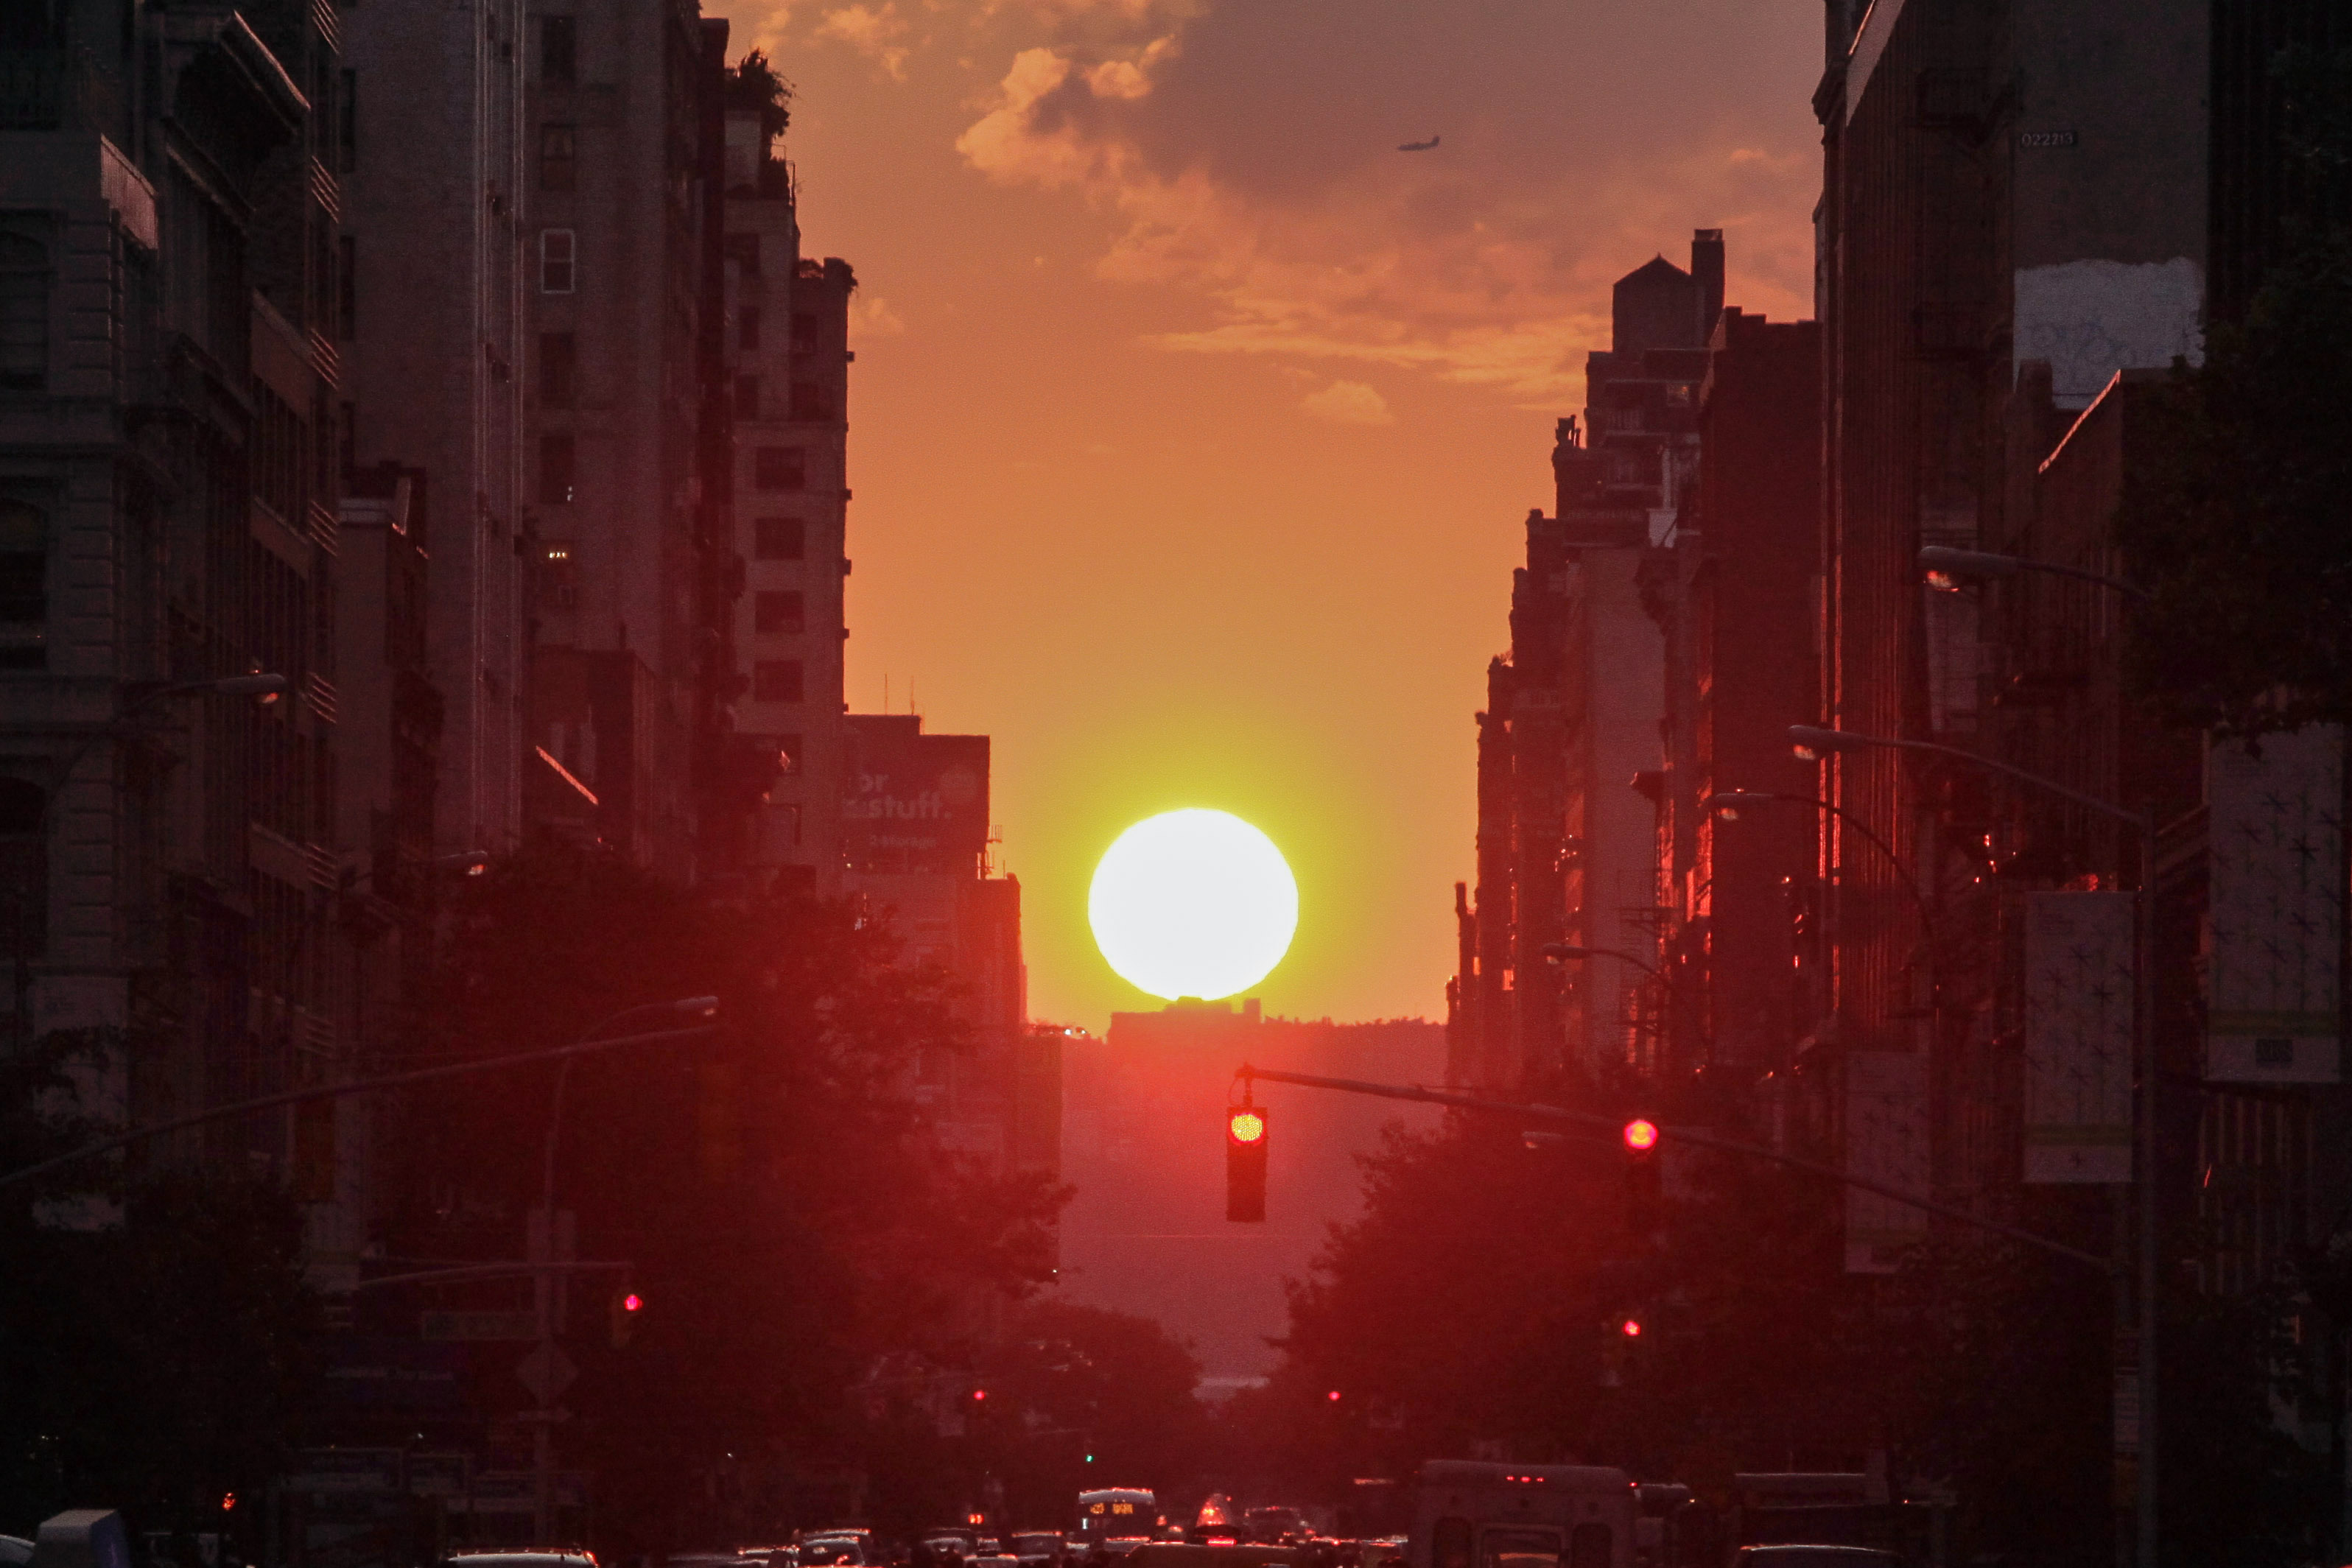 The sun sets on 23rd Street during  Manhattanhenge  on July 11, 2014 in New York City.